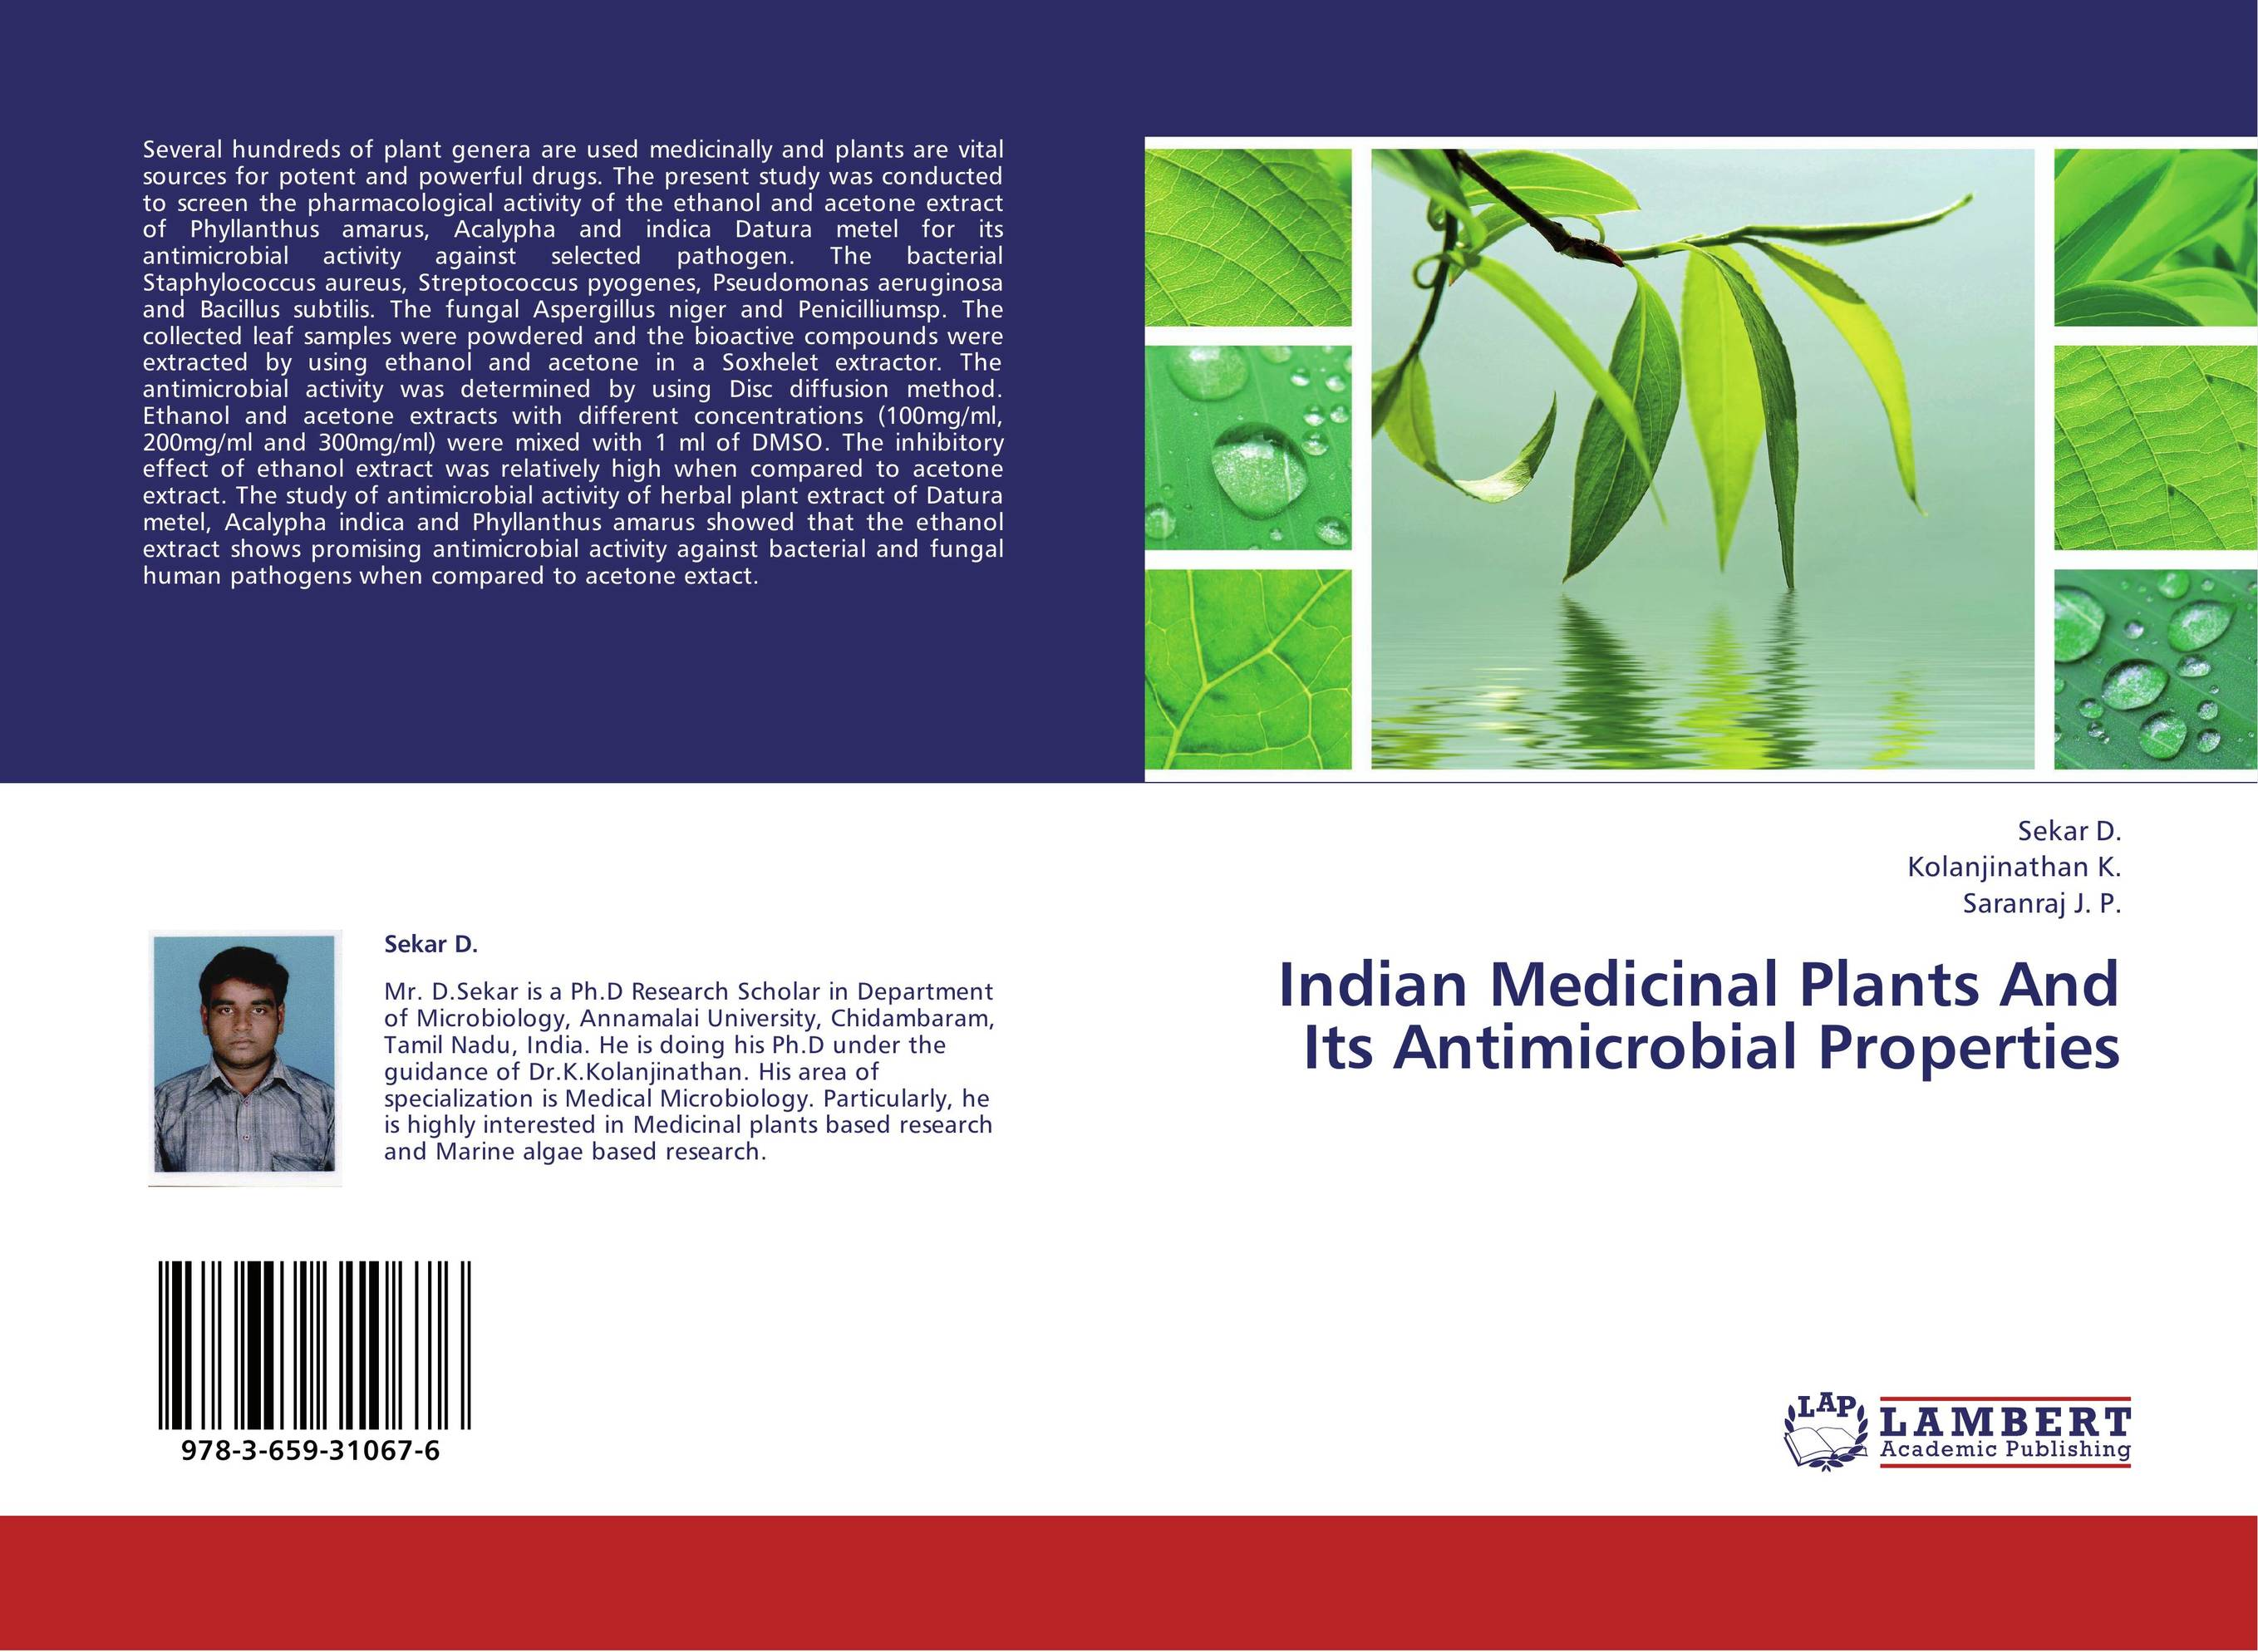 antimicrobial activity of medicinal plants thesis In the present paper, we analyze the past, present and future of medicinal plants, both as potential antimicrobial crude drugs as well as a source for natural compounds that act as new anti-infection agents.